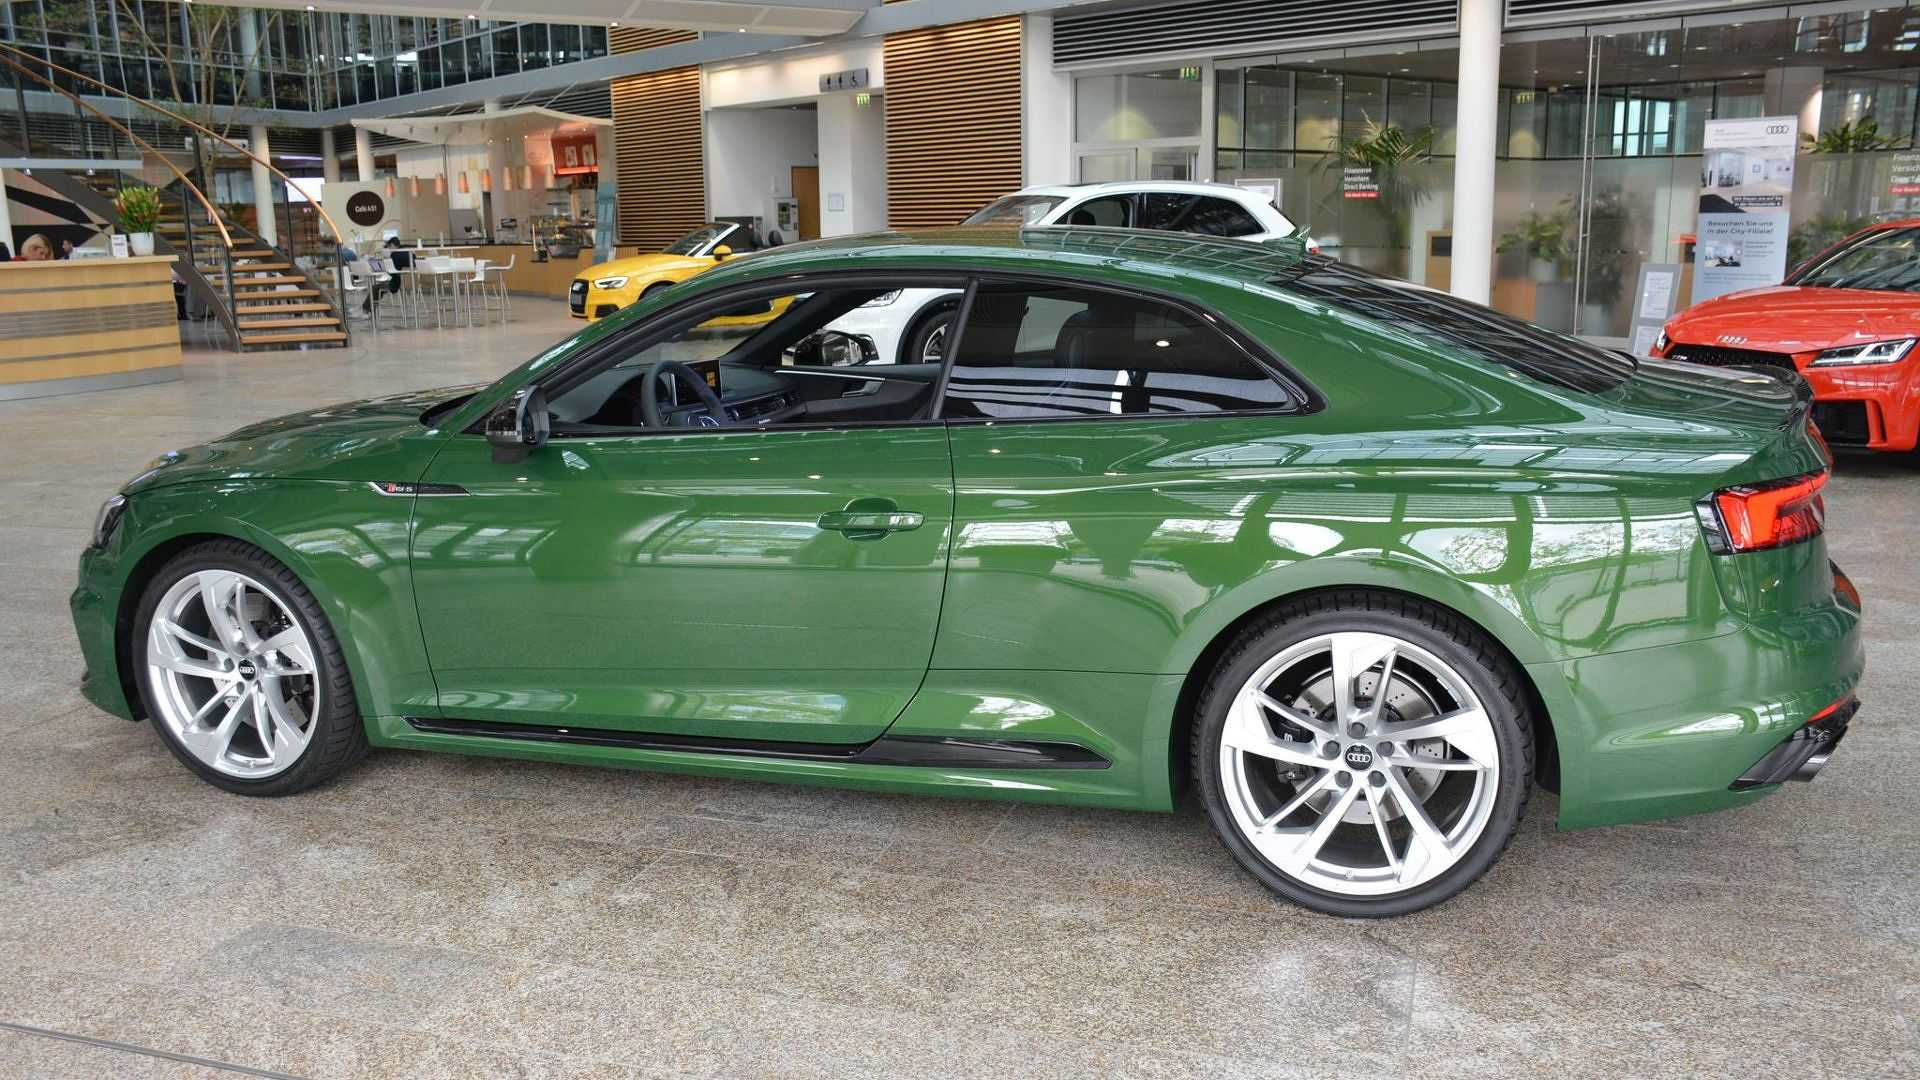 Green Audi Rs5 Is So Unusual They Immediately Put It In A